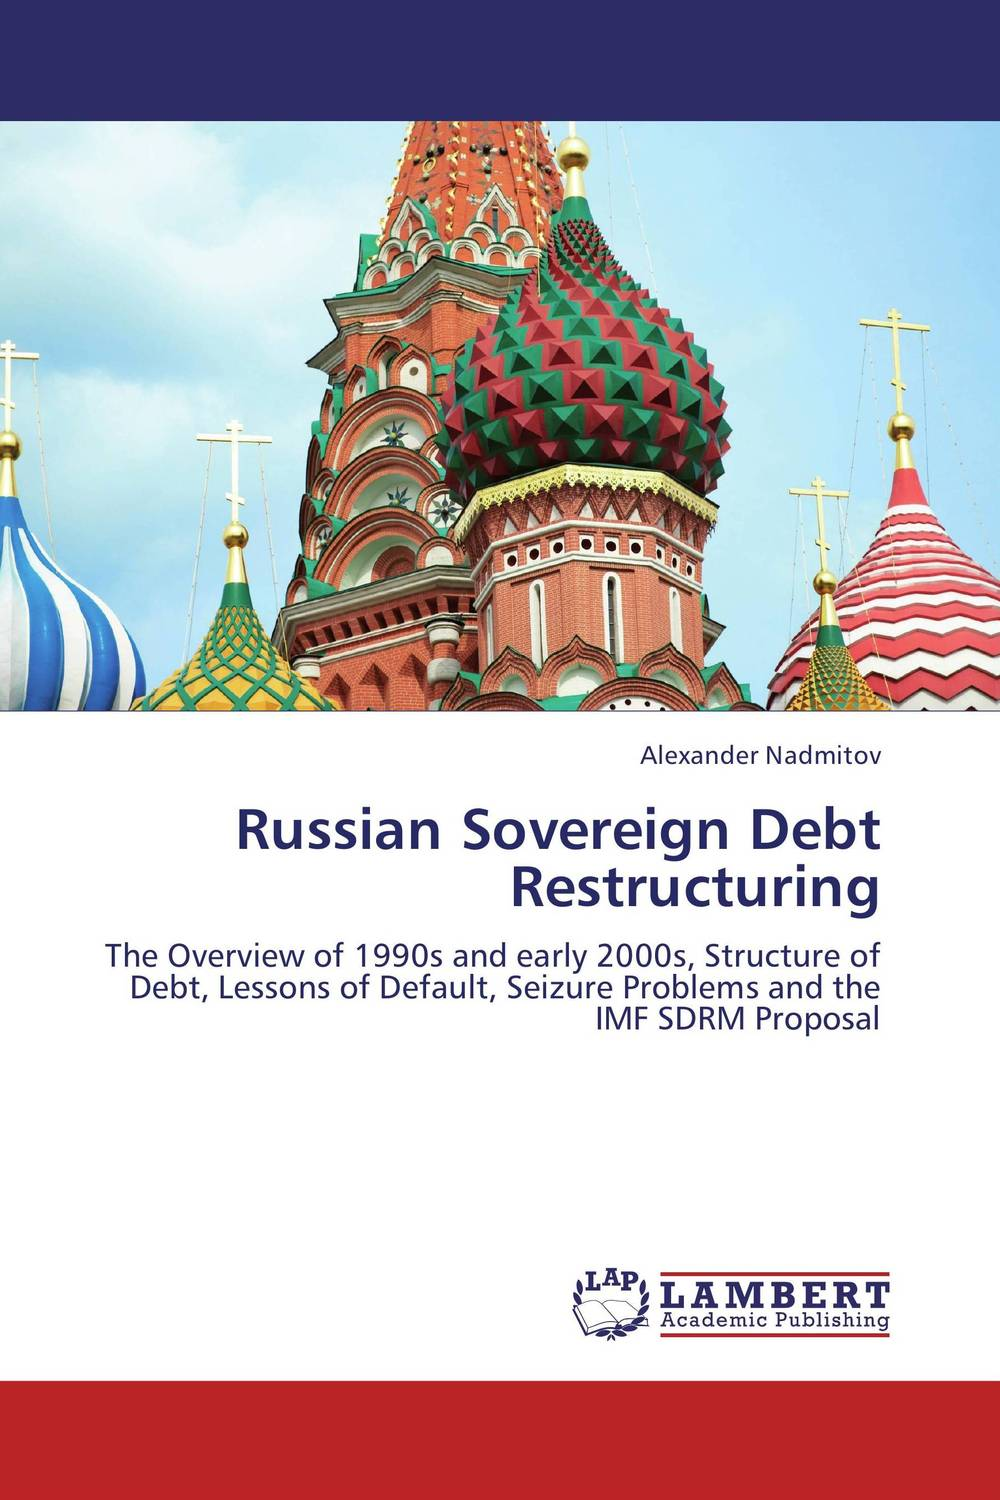 Фото Russian Sovereign Debt Restructuring finance and investments